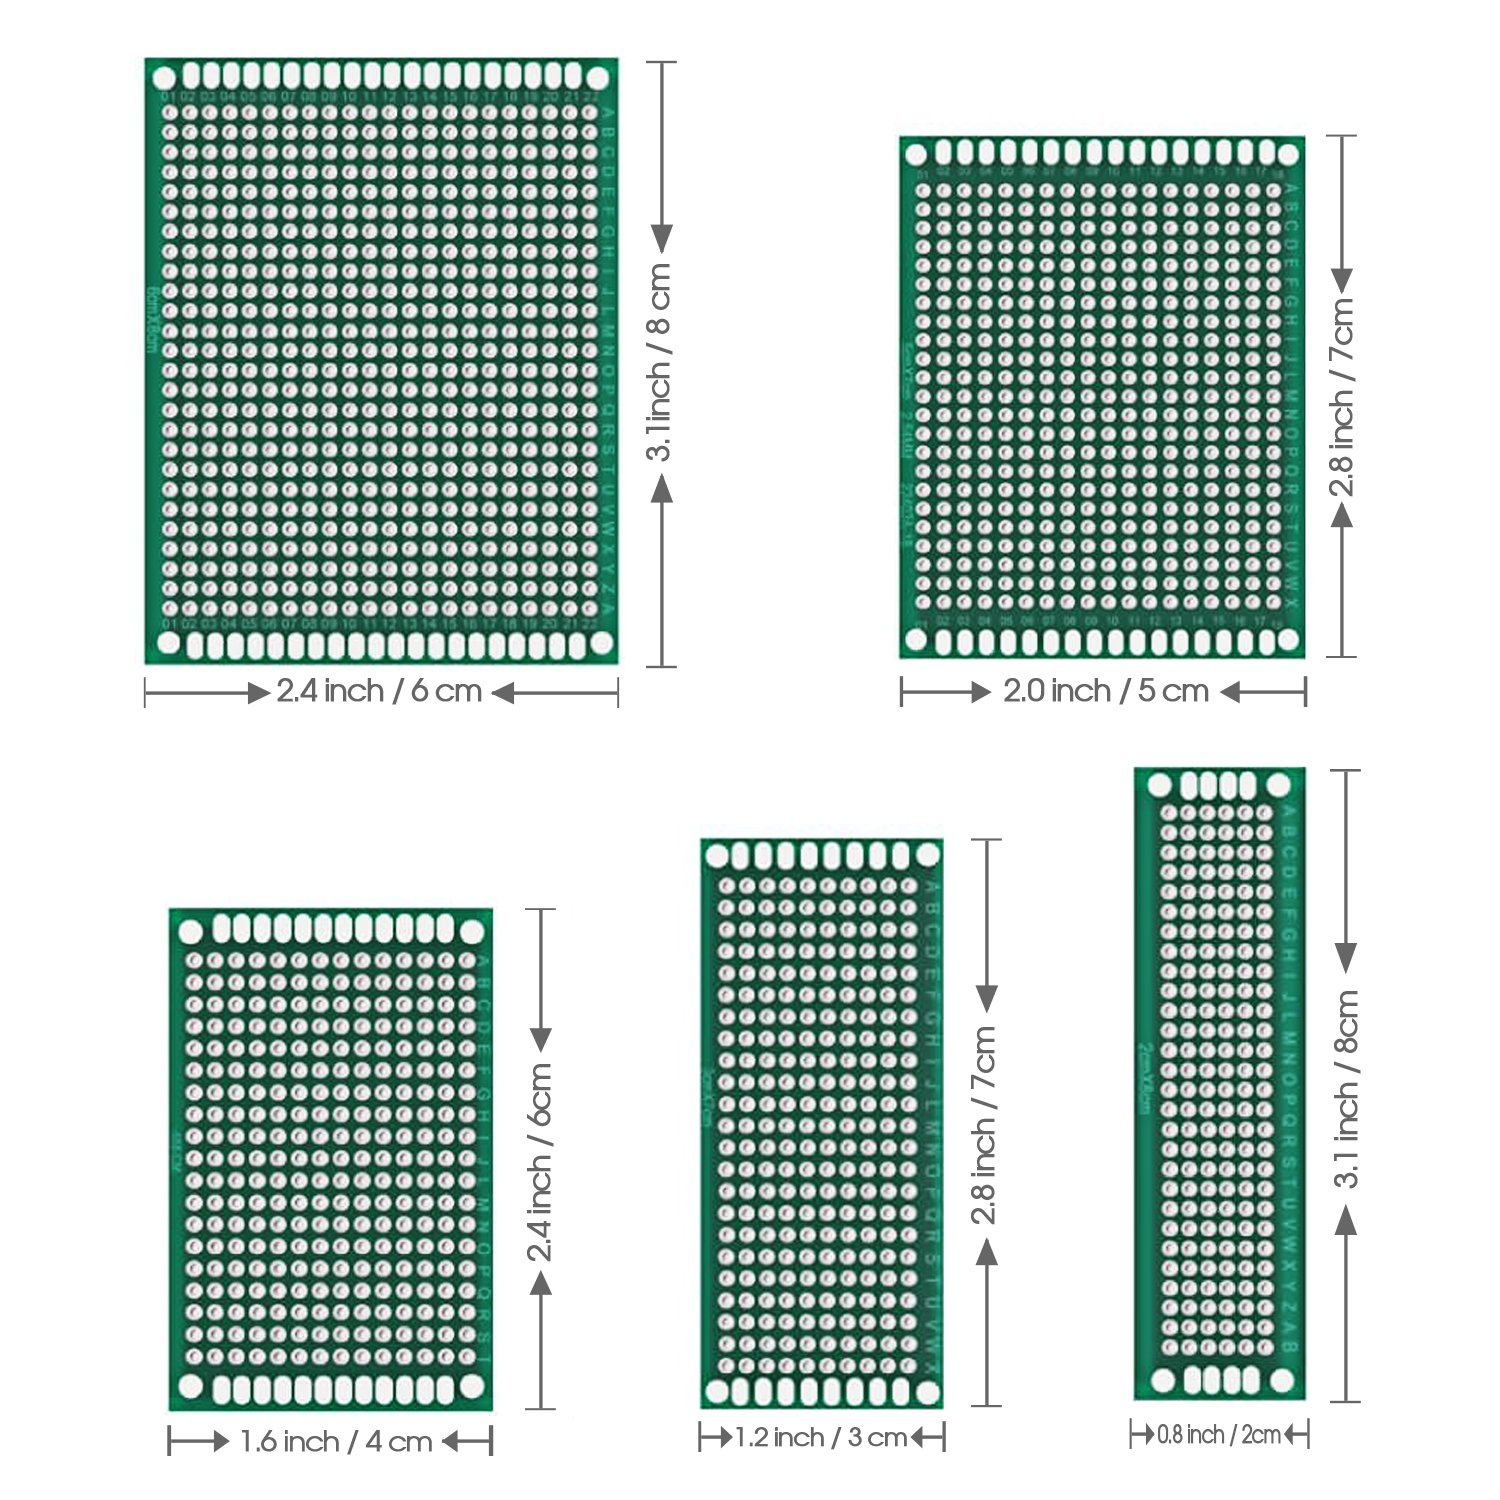 50 Pcs Double Sided Pcb Board Prototype Kit Soldering 5 Sizes Doublesided Printed Circuit Boards Universal For Diy And Electronic Project